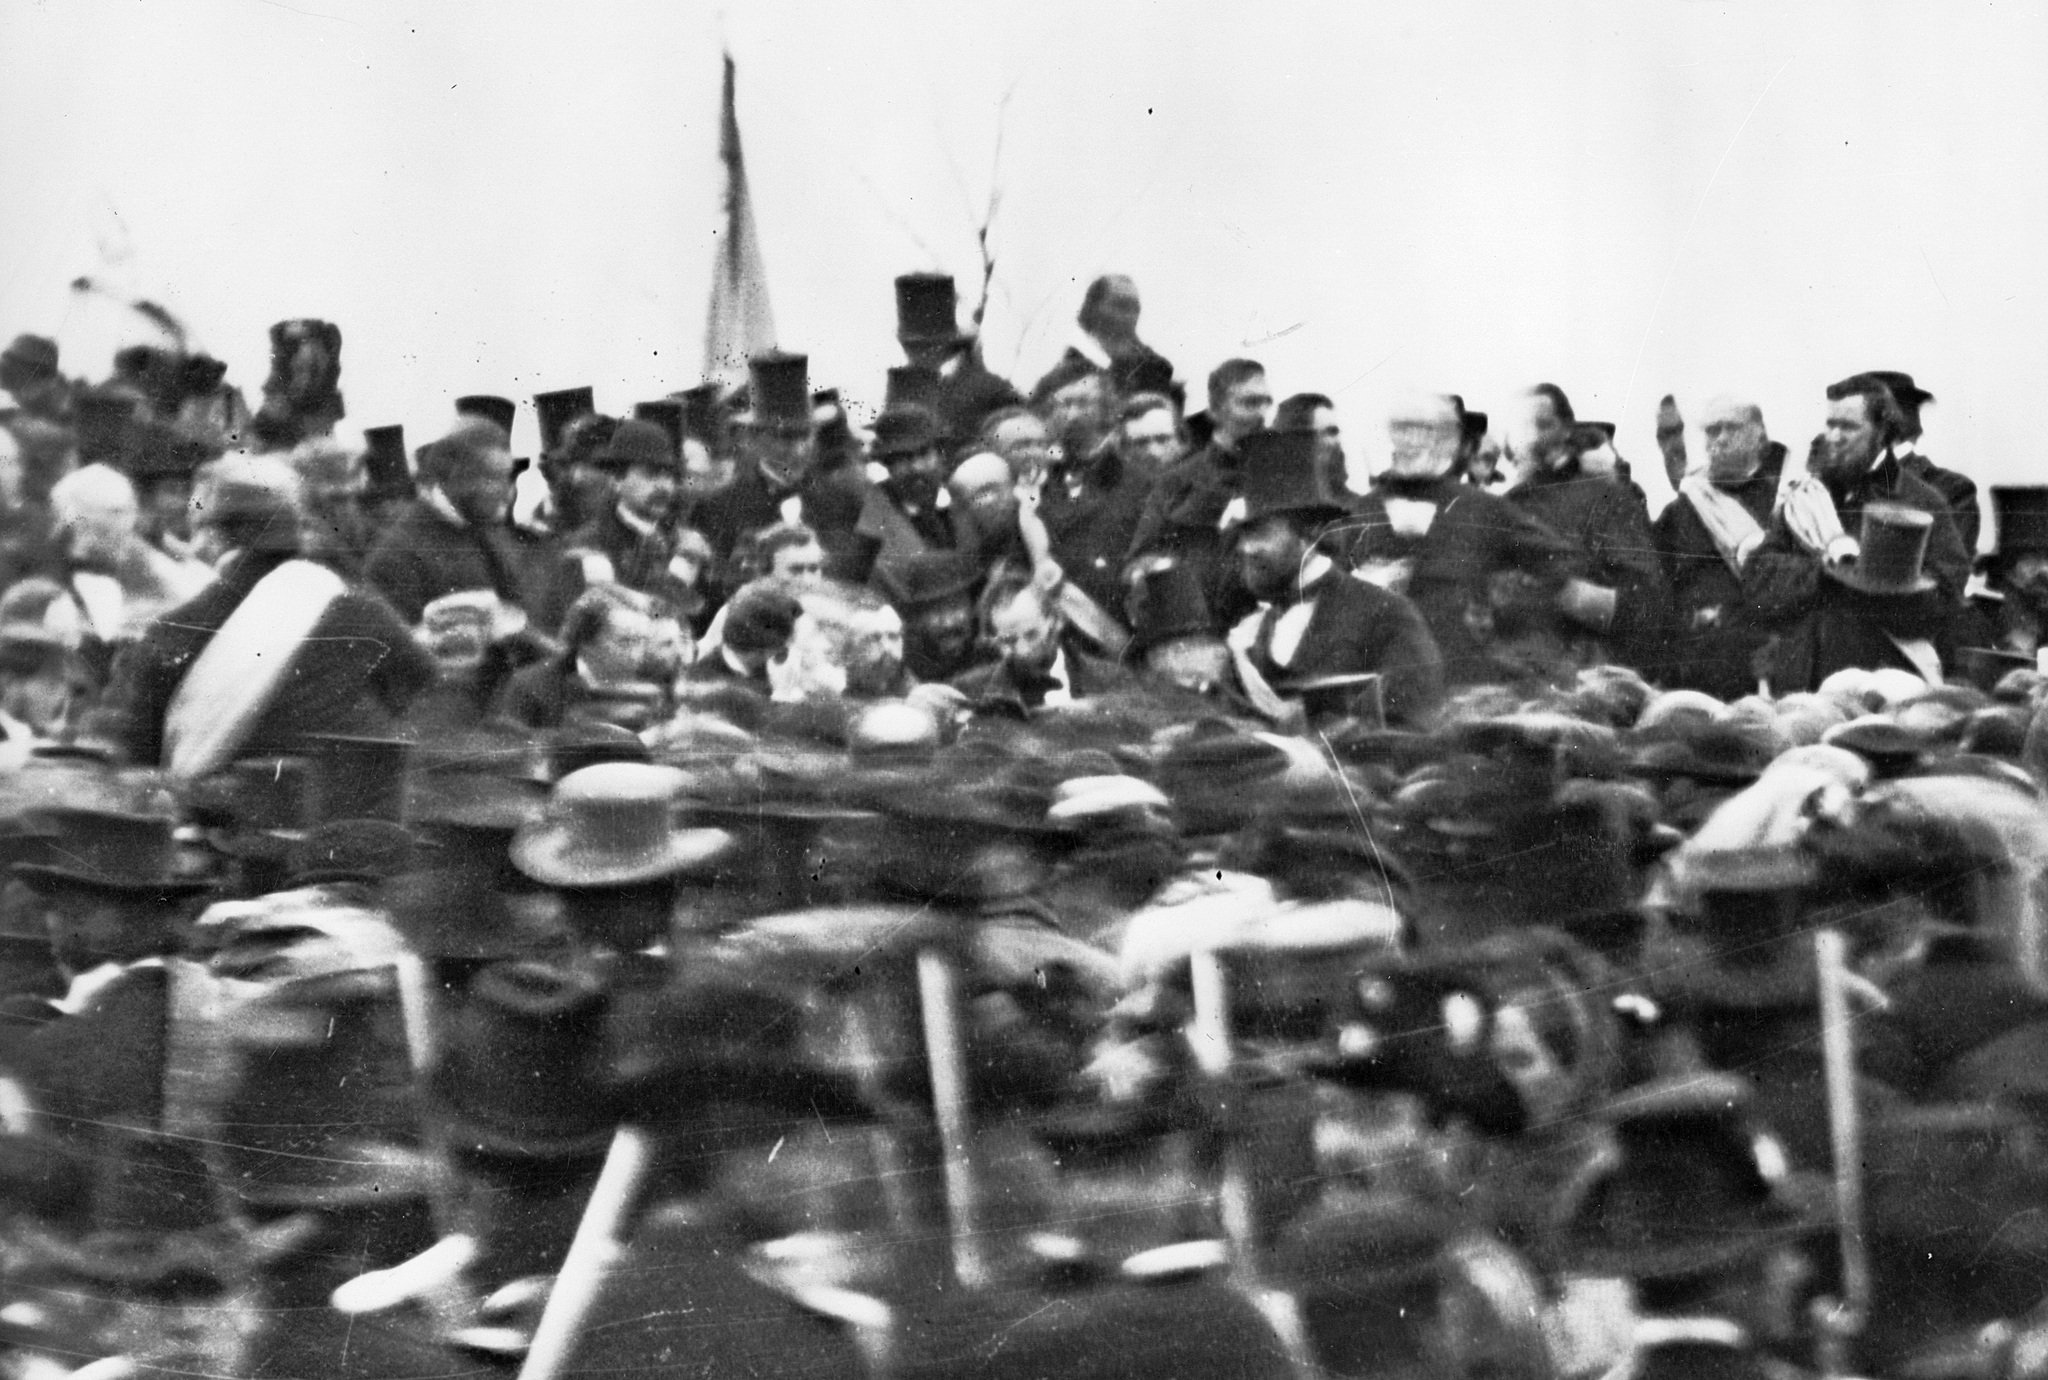 A photo of the dedication ceremony where Lincoln delivered the Gettysburg address.